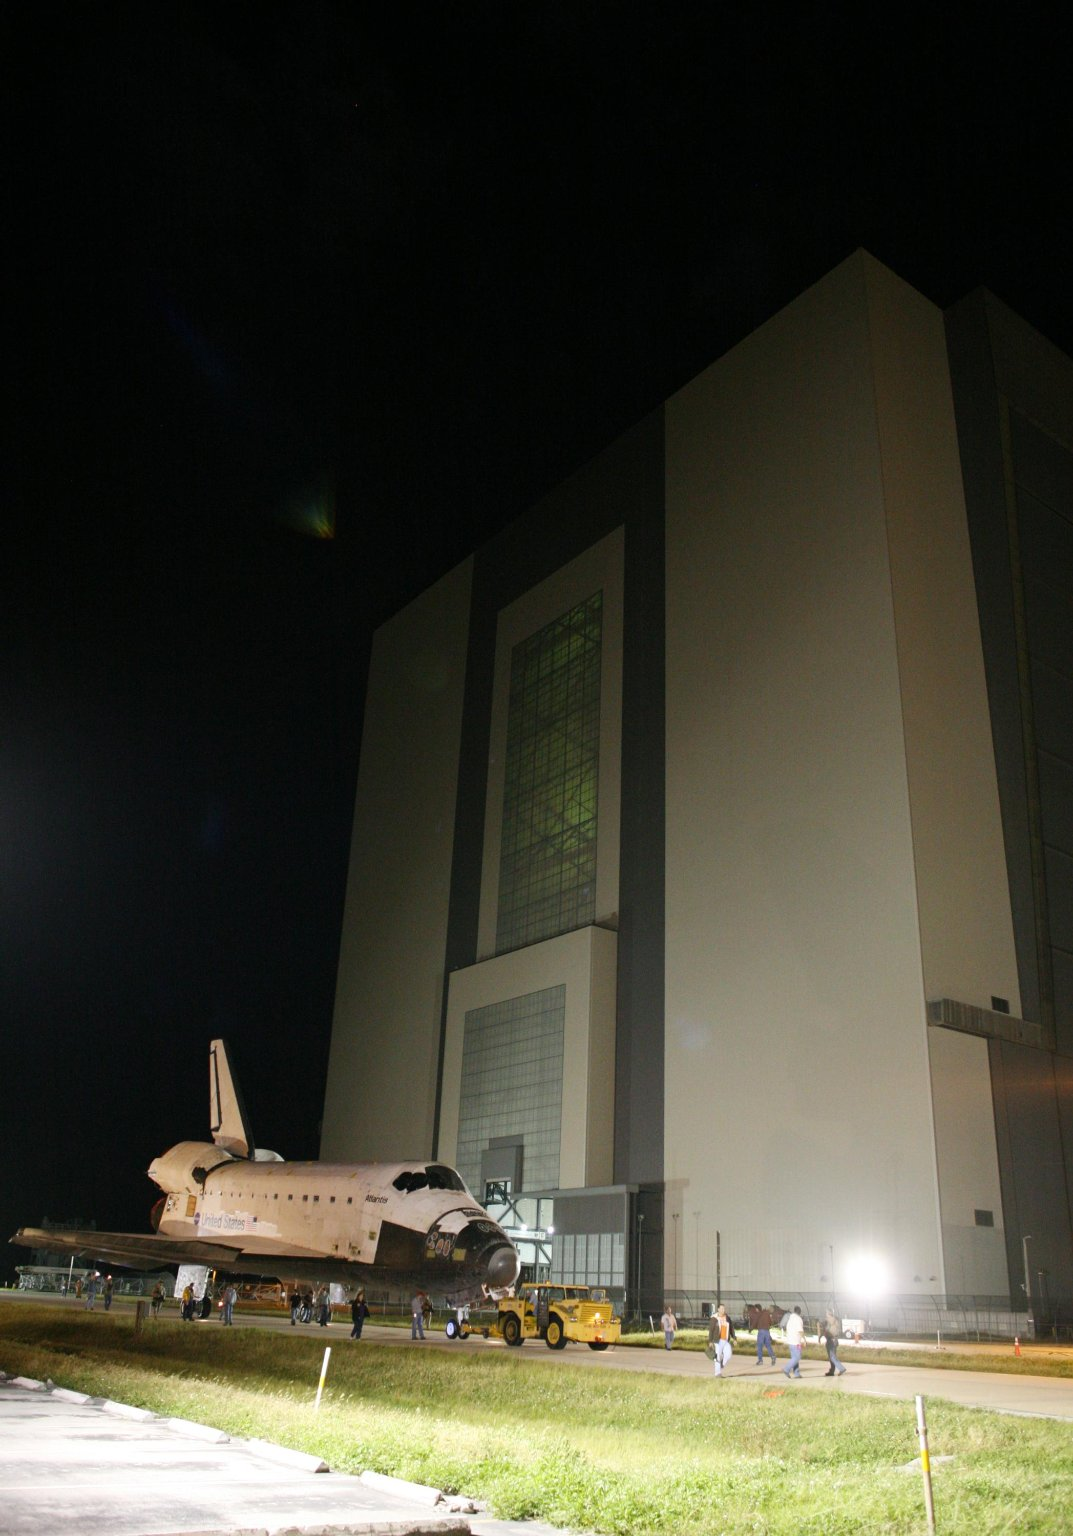 Leaving the VAB